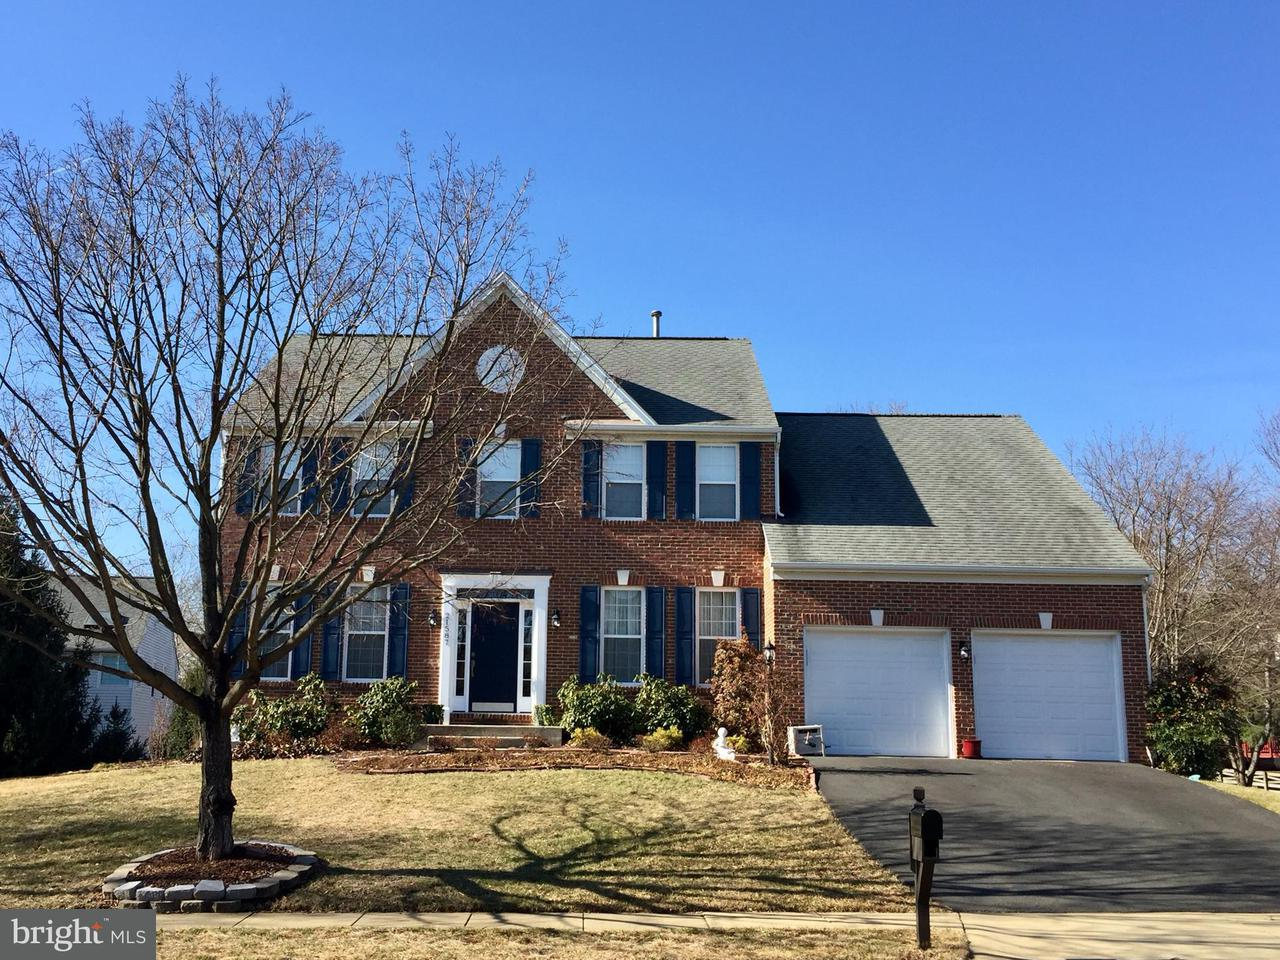 Single Family Home for Sale at 21587 Goodwin Court 21587 Goodwin Court Broadlands, Virginia 20148 United States